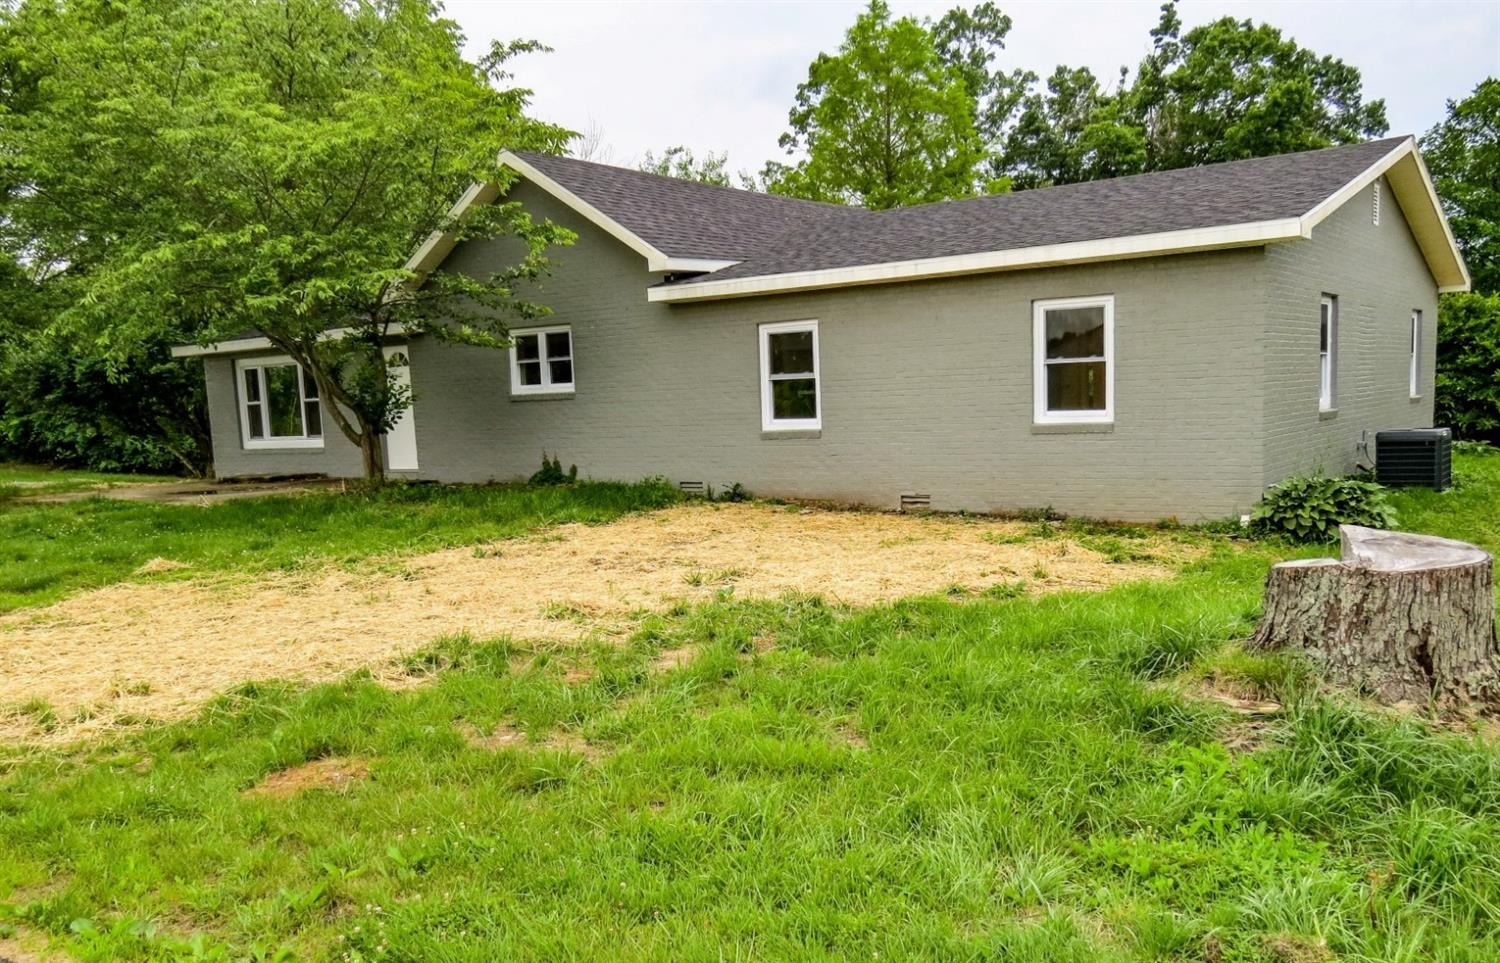 Photo 2 for 9065 Plum Creek Rd Vevay, IN 47043